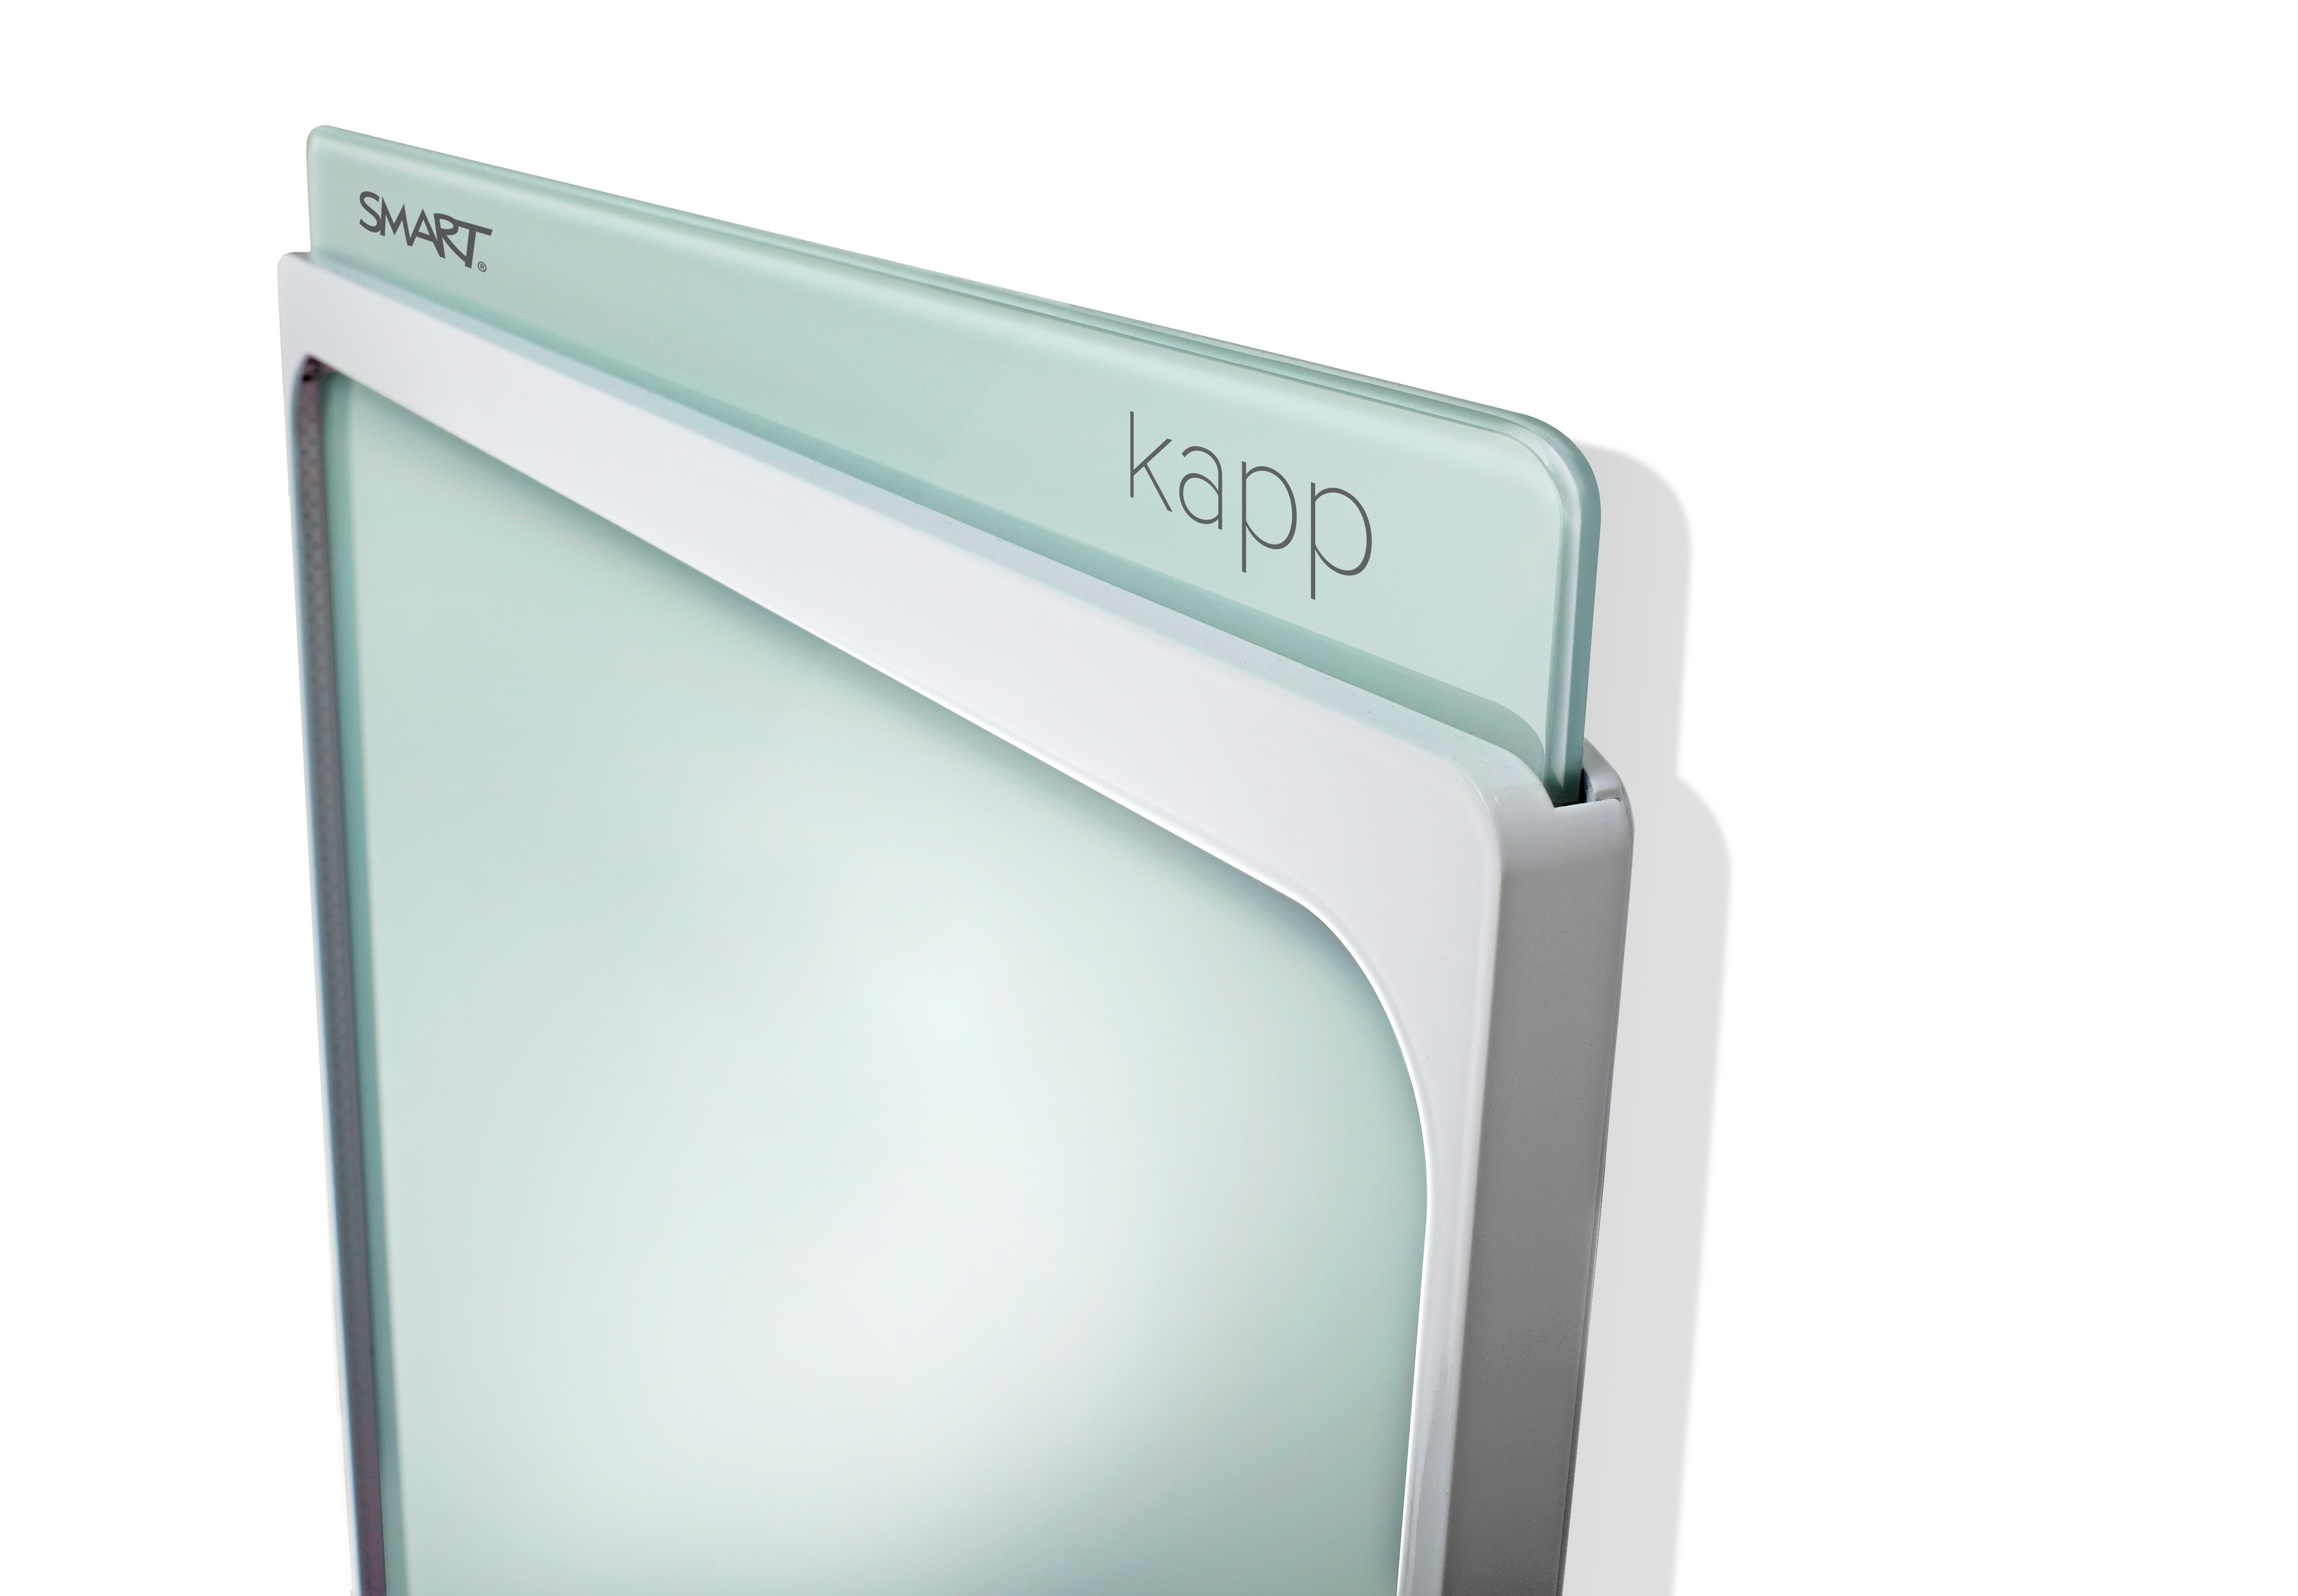 Smart Kapp Whiteboard – Real time Sharing4